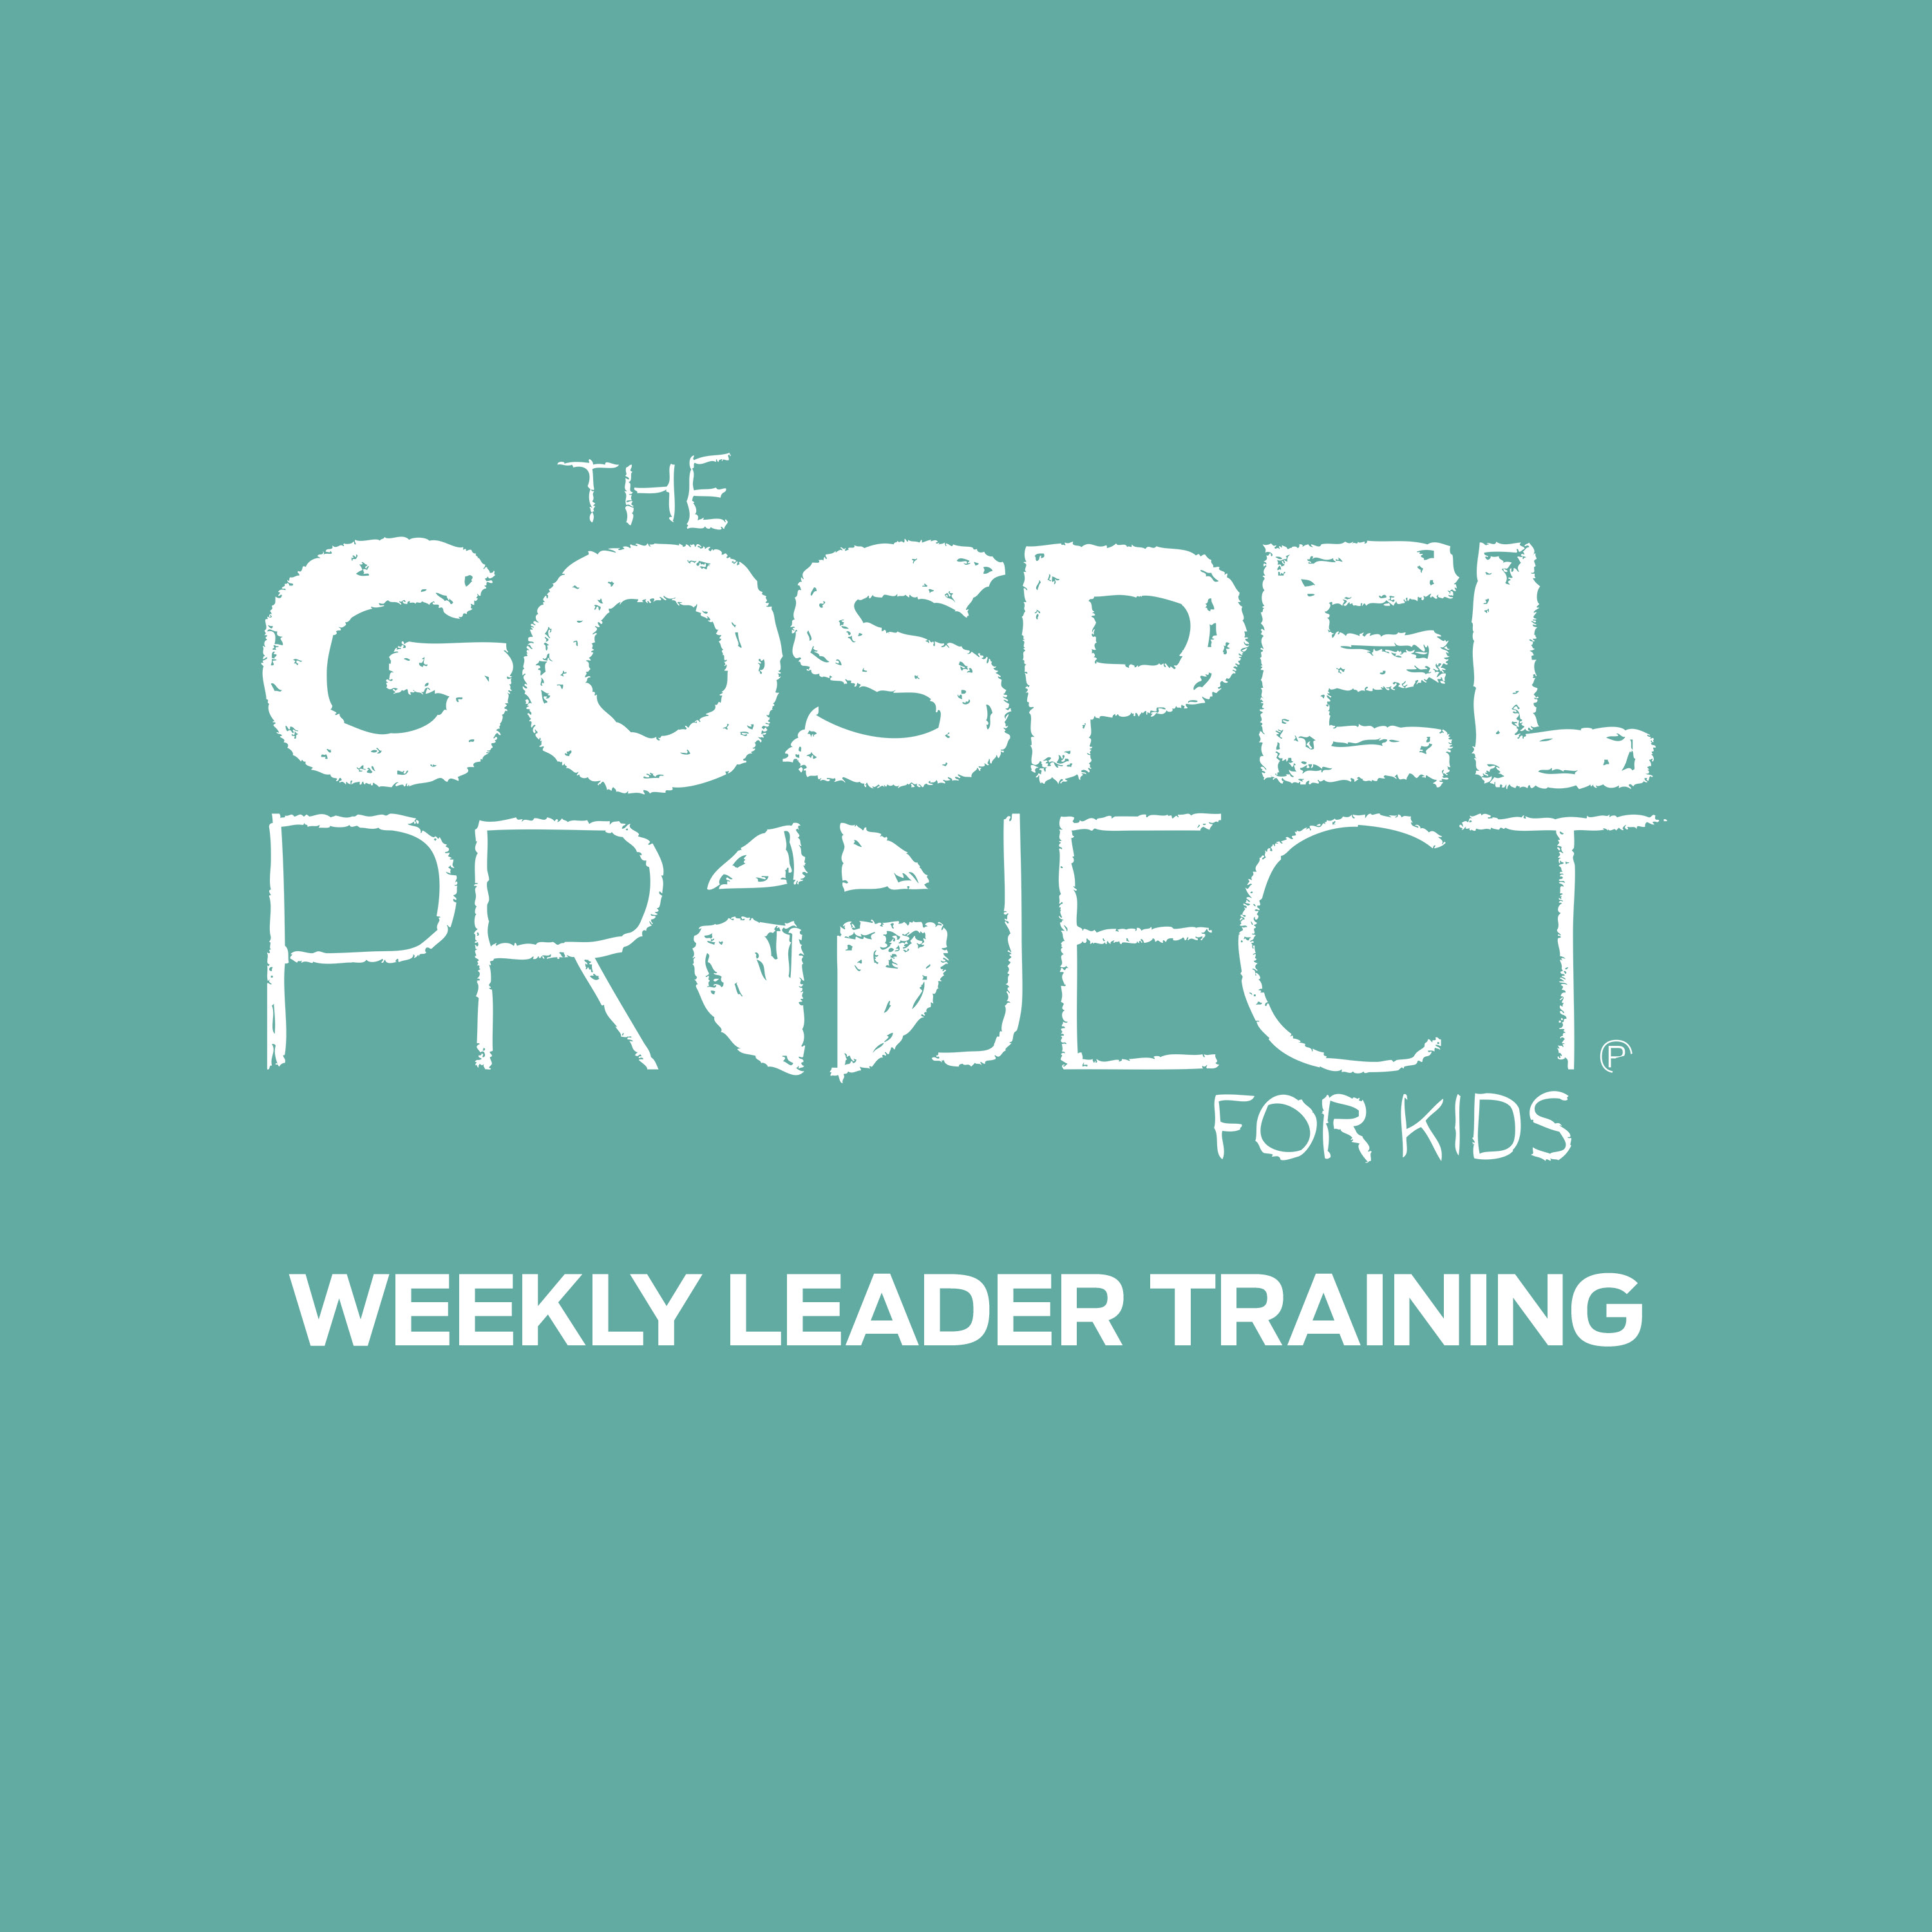 The Gospel Project for Kids Weekly Leader Training